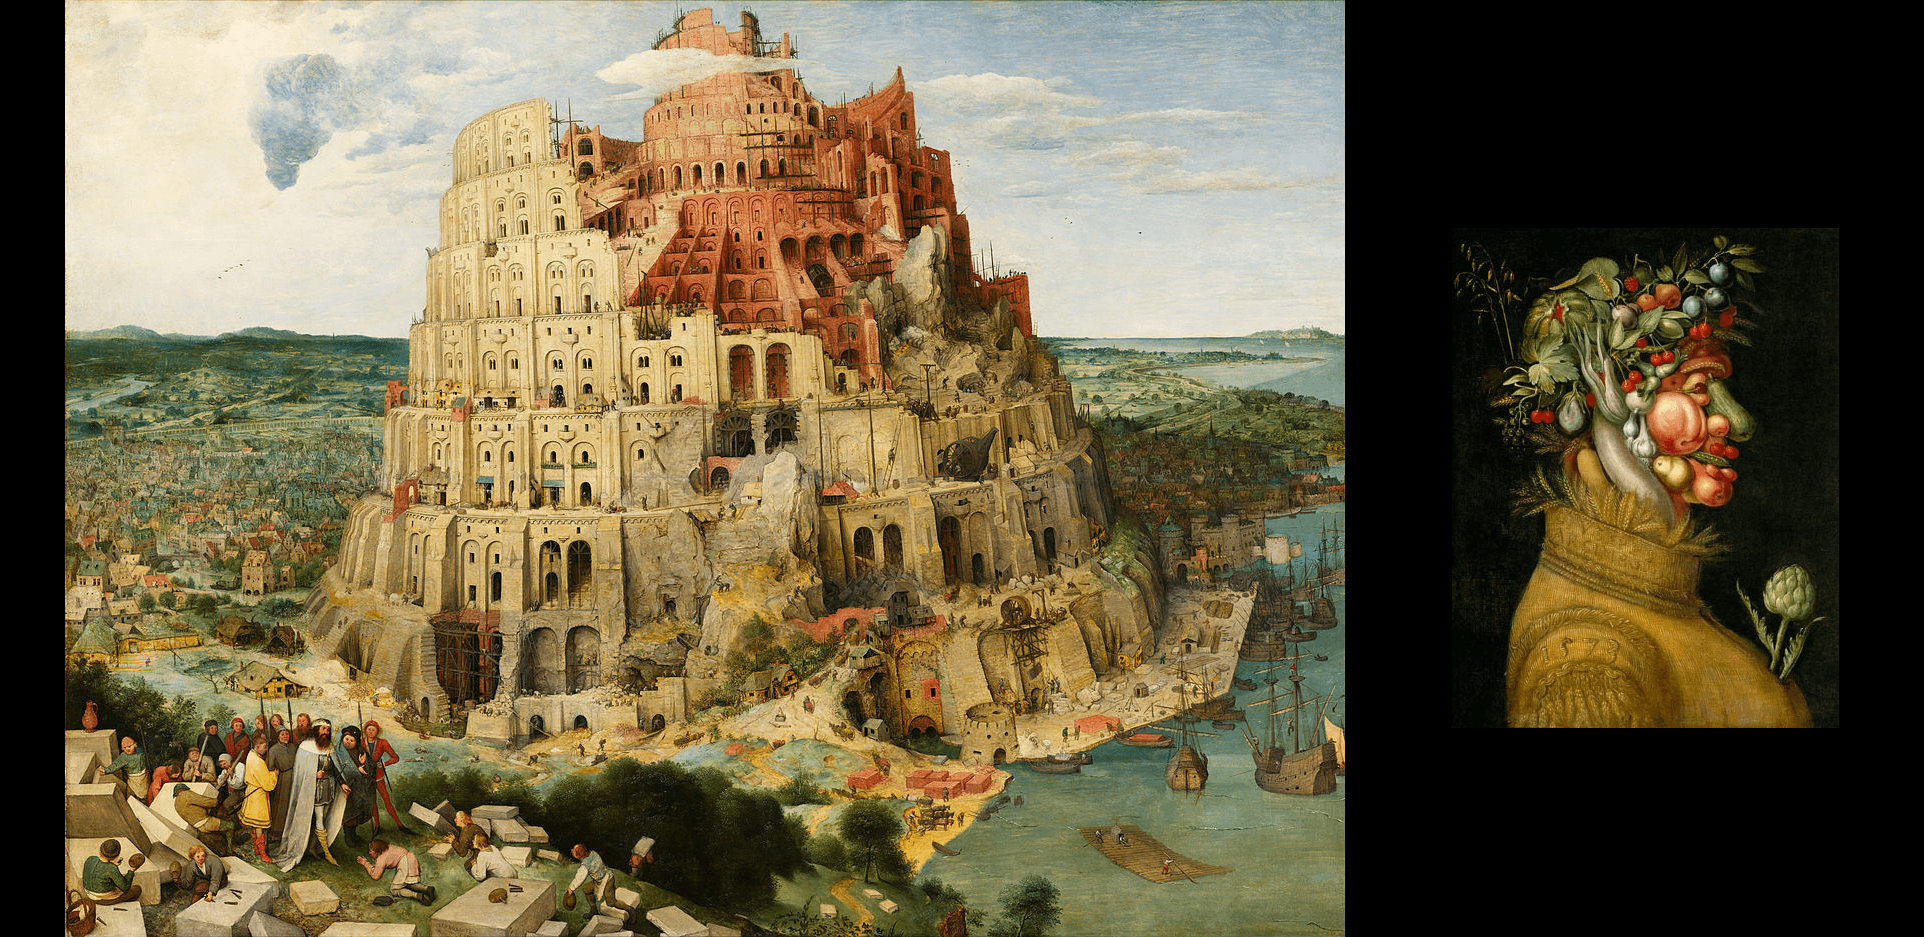 Pieter Bruegel - The Tower of Babel and Giuseppe Arcimboldo - Summer